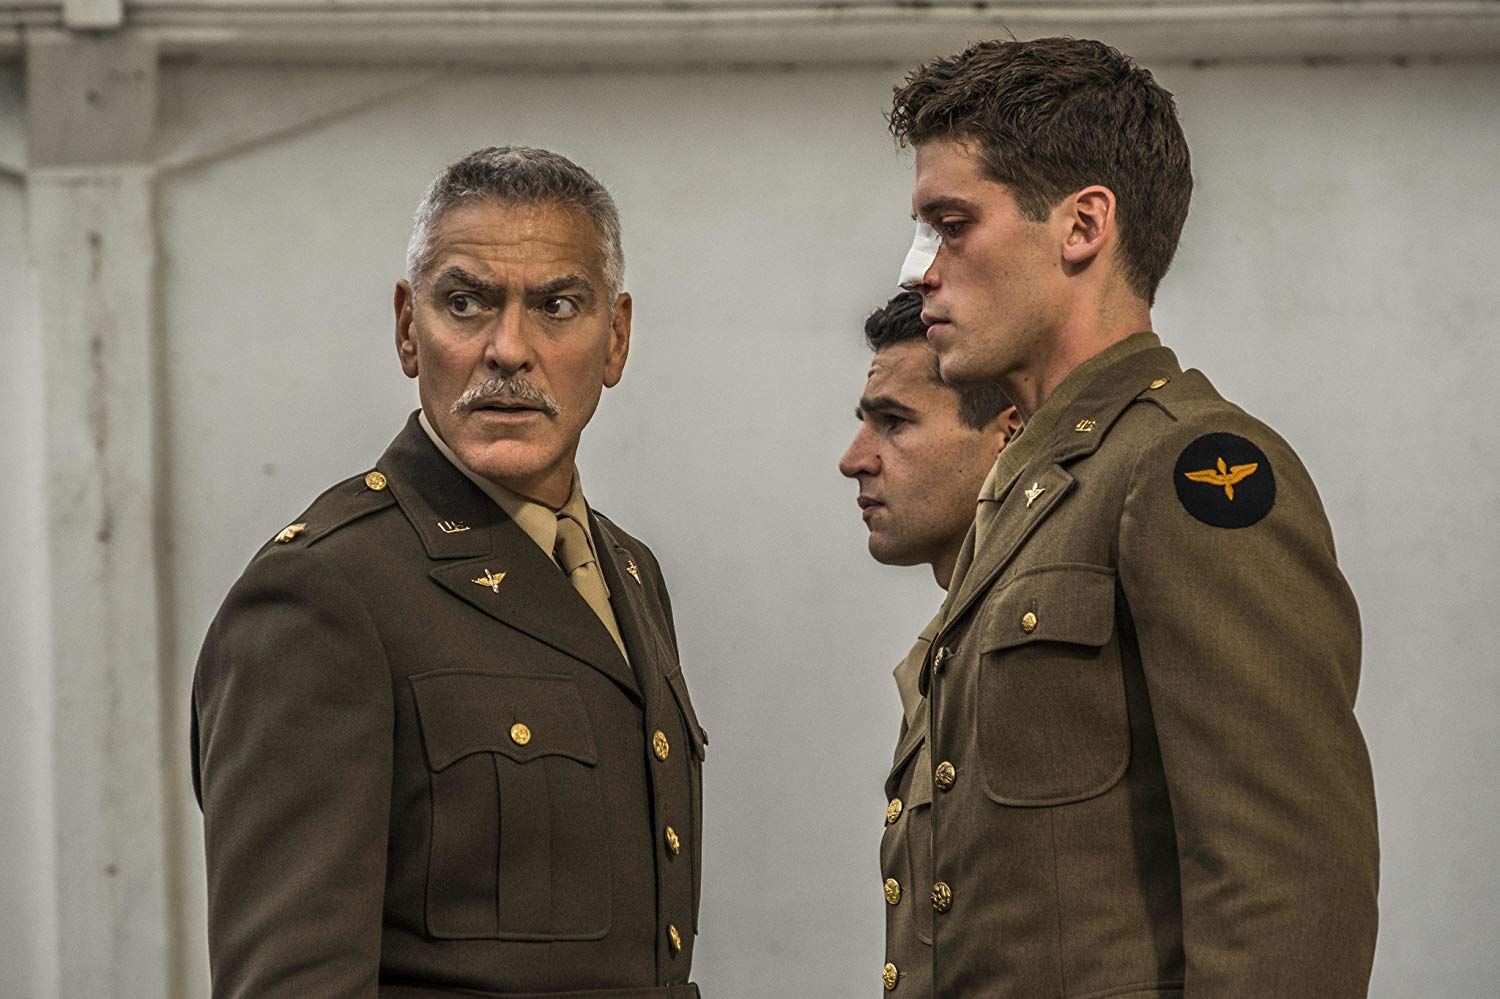 George Clooney produces and stars in Hulu's historical comedy miniseries